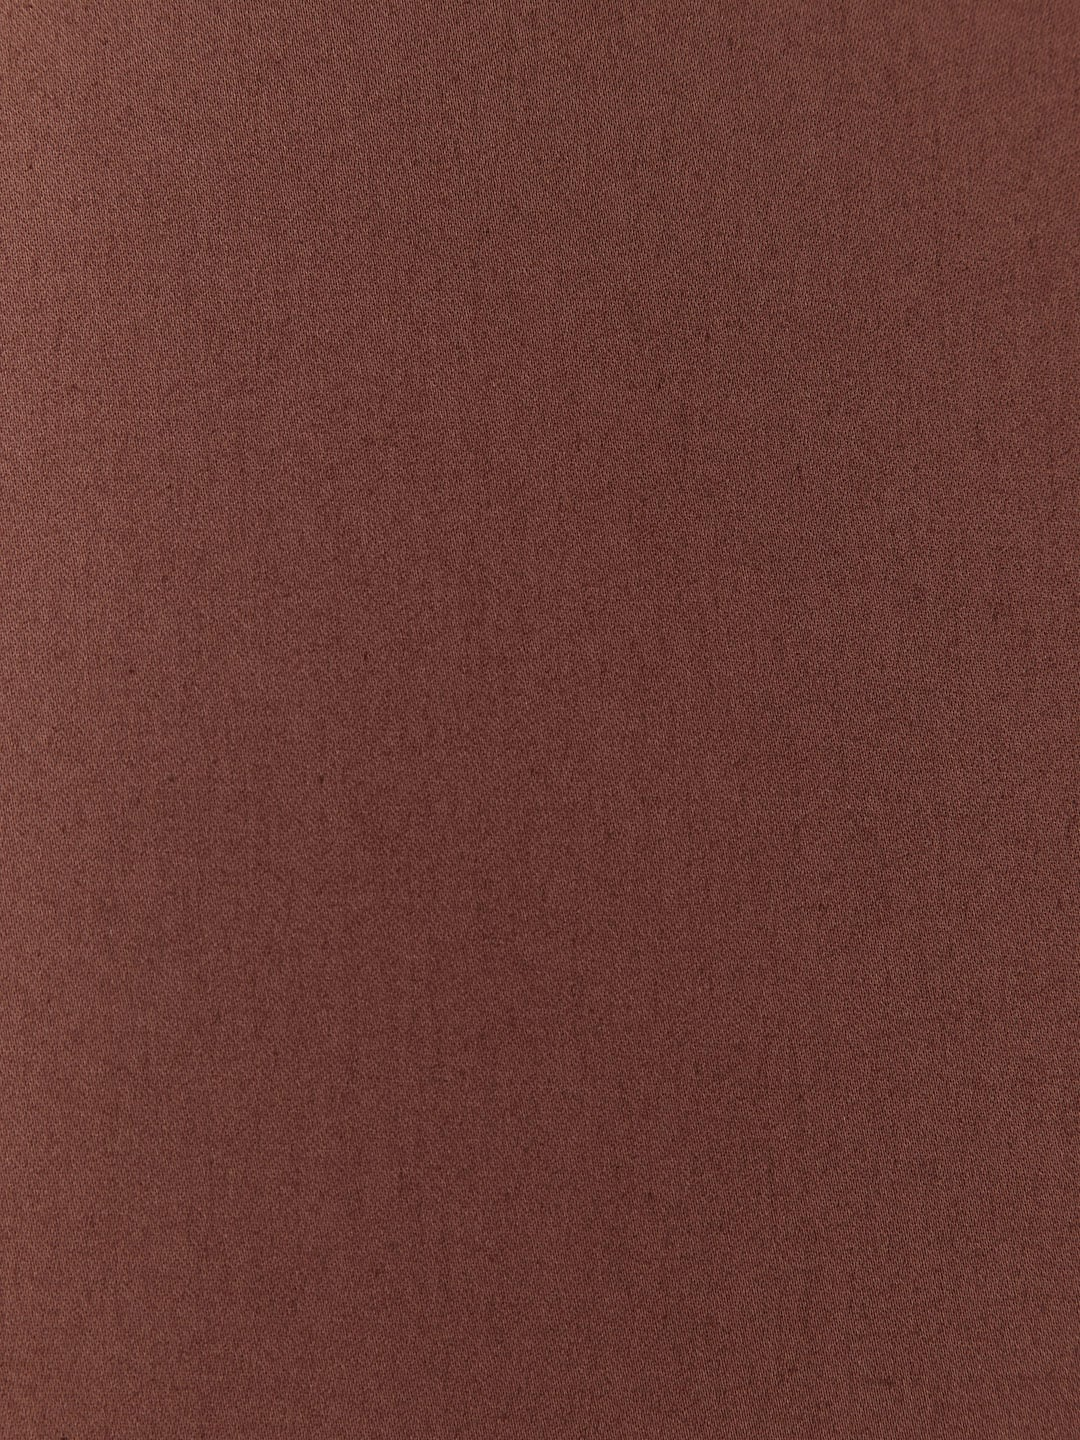 Brown bed sheets texture - Brown Bed Sheets Texture 59